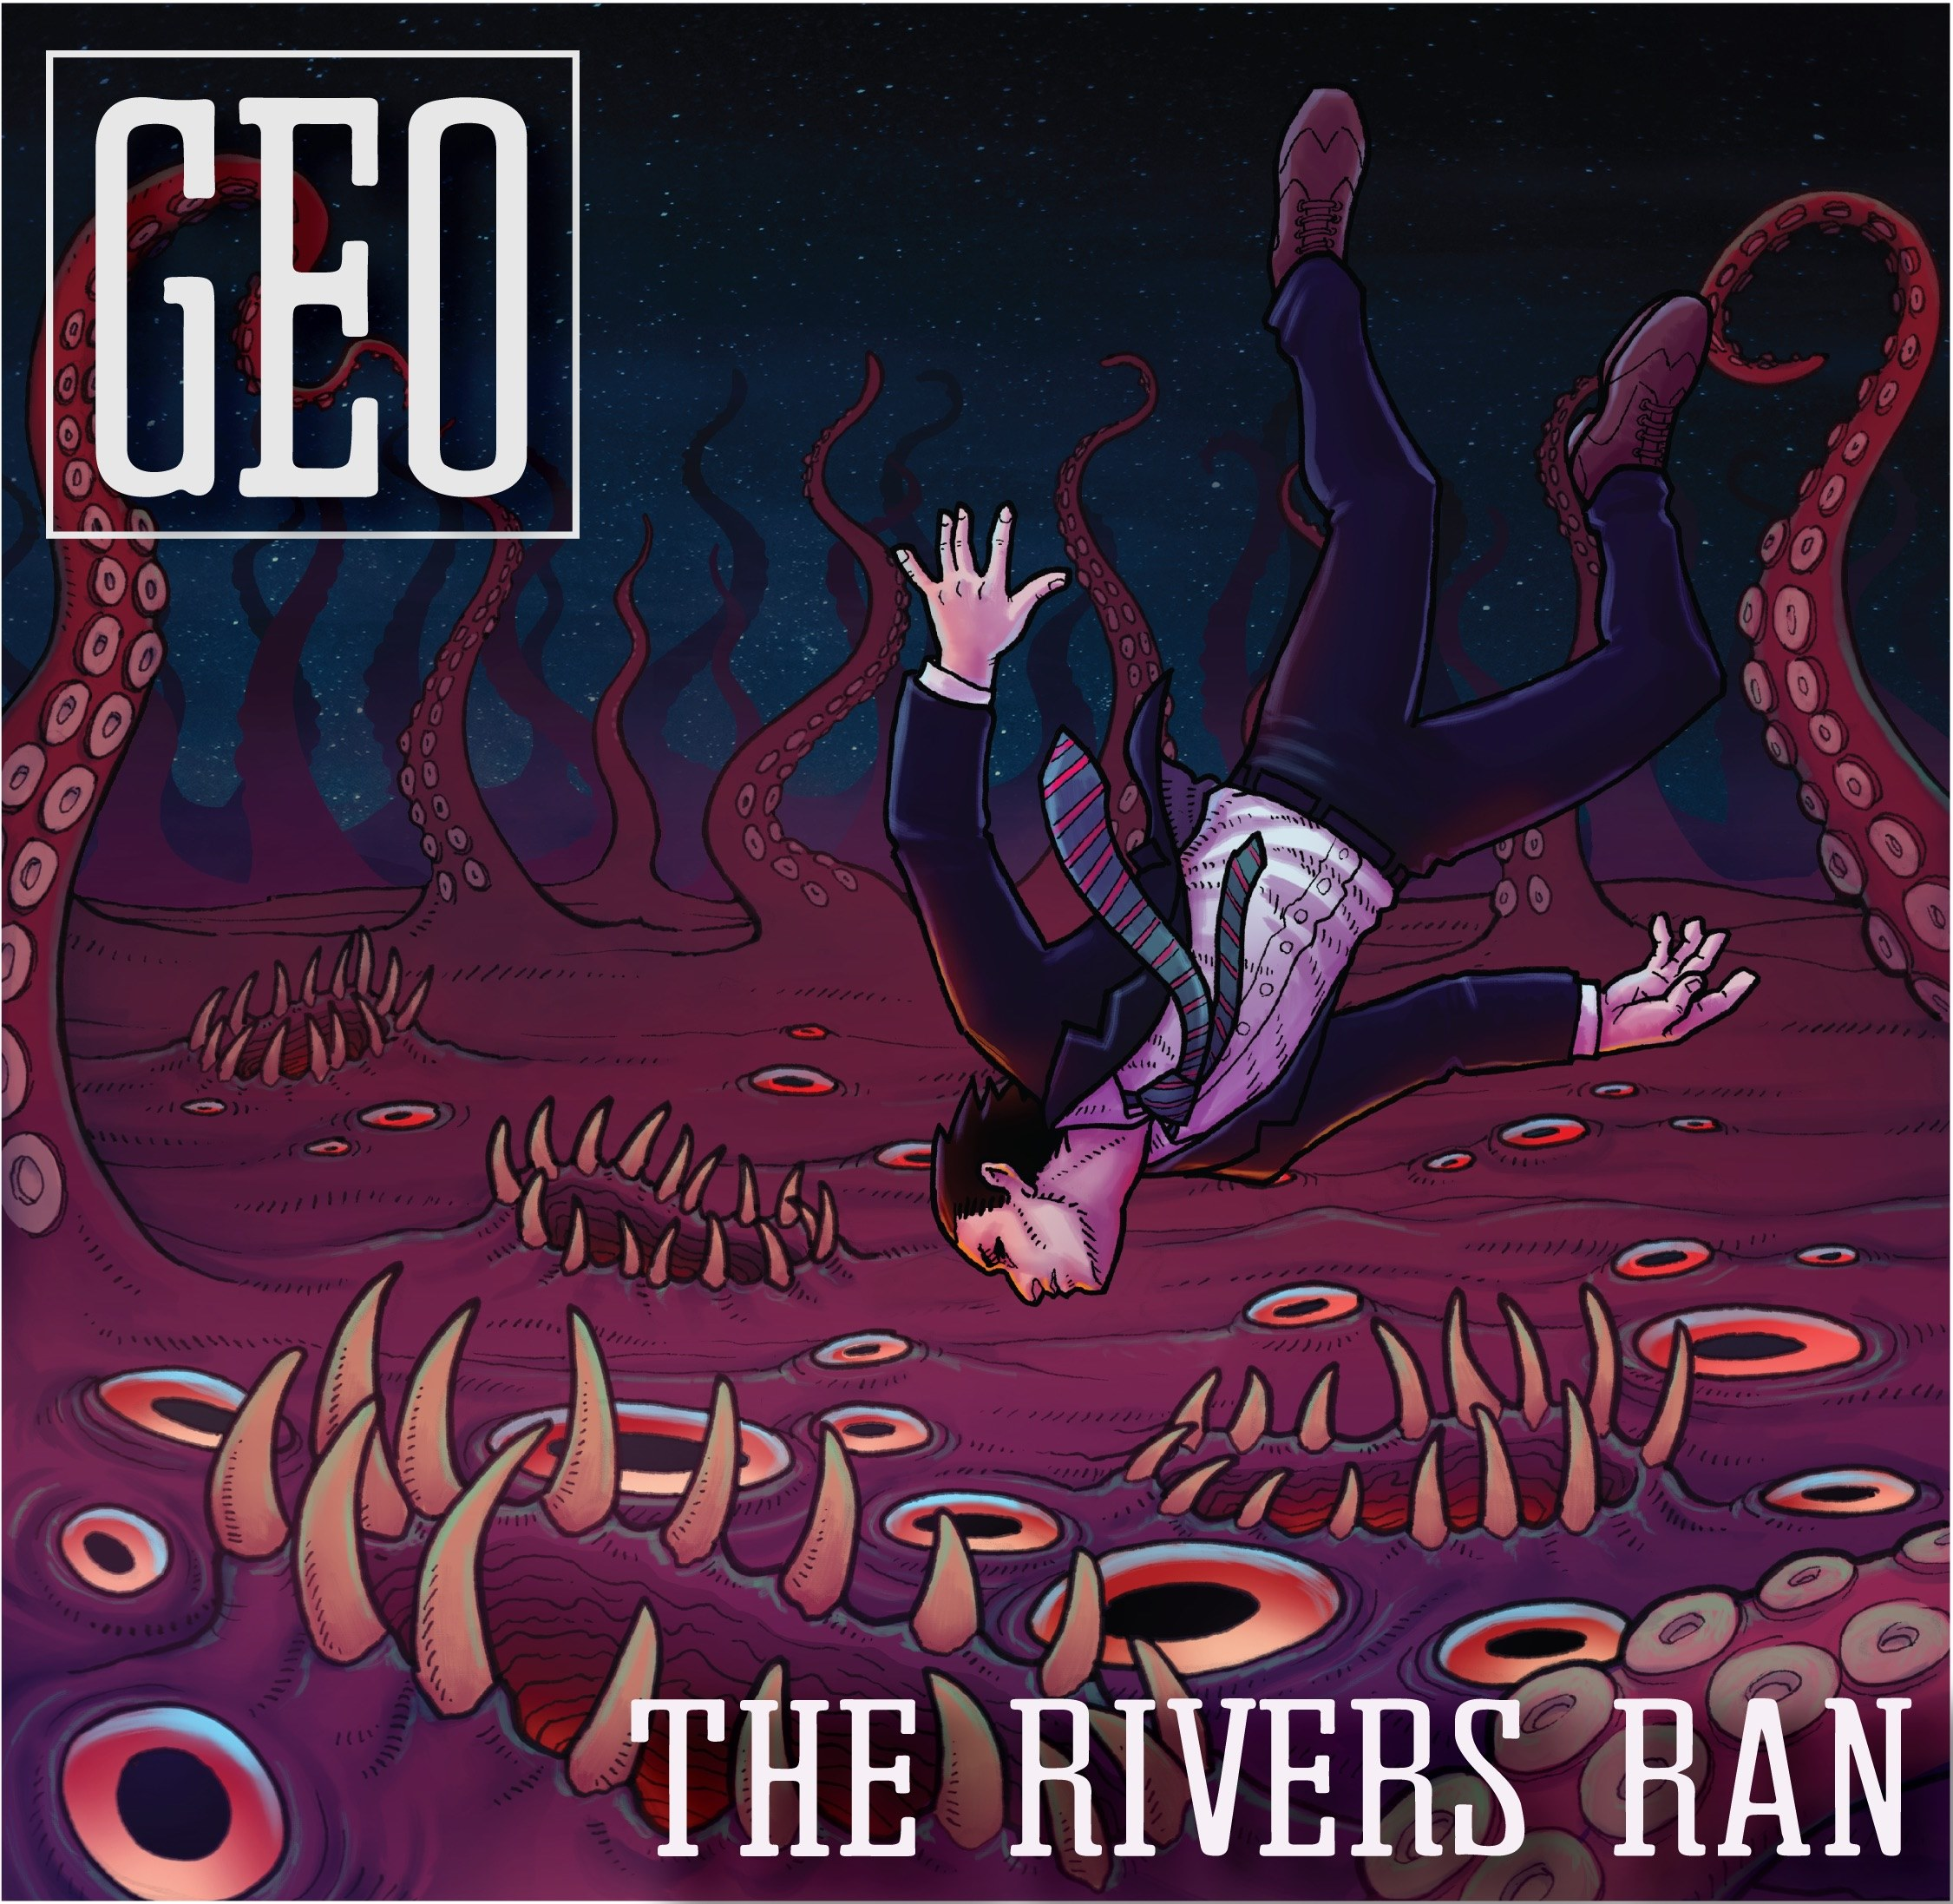 GEO - The Rivers Ran  Production, Recording, Editing, Mixing